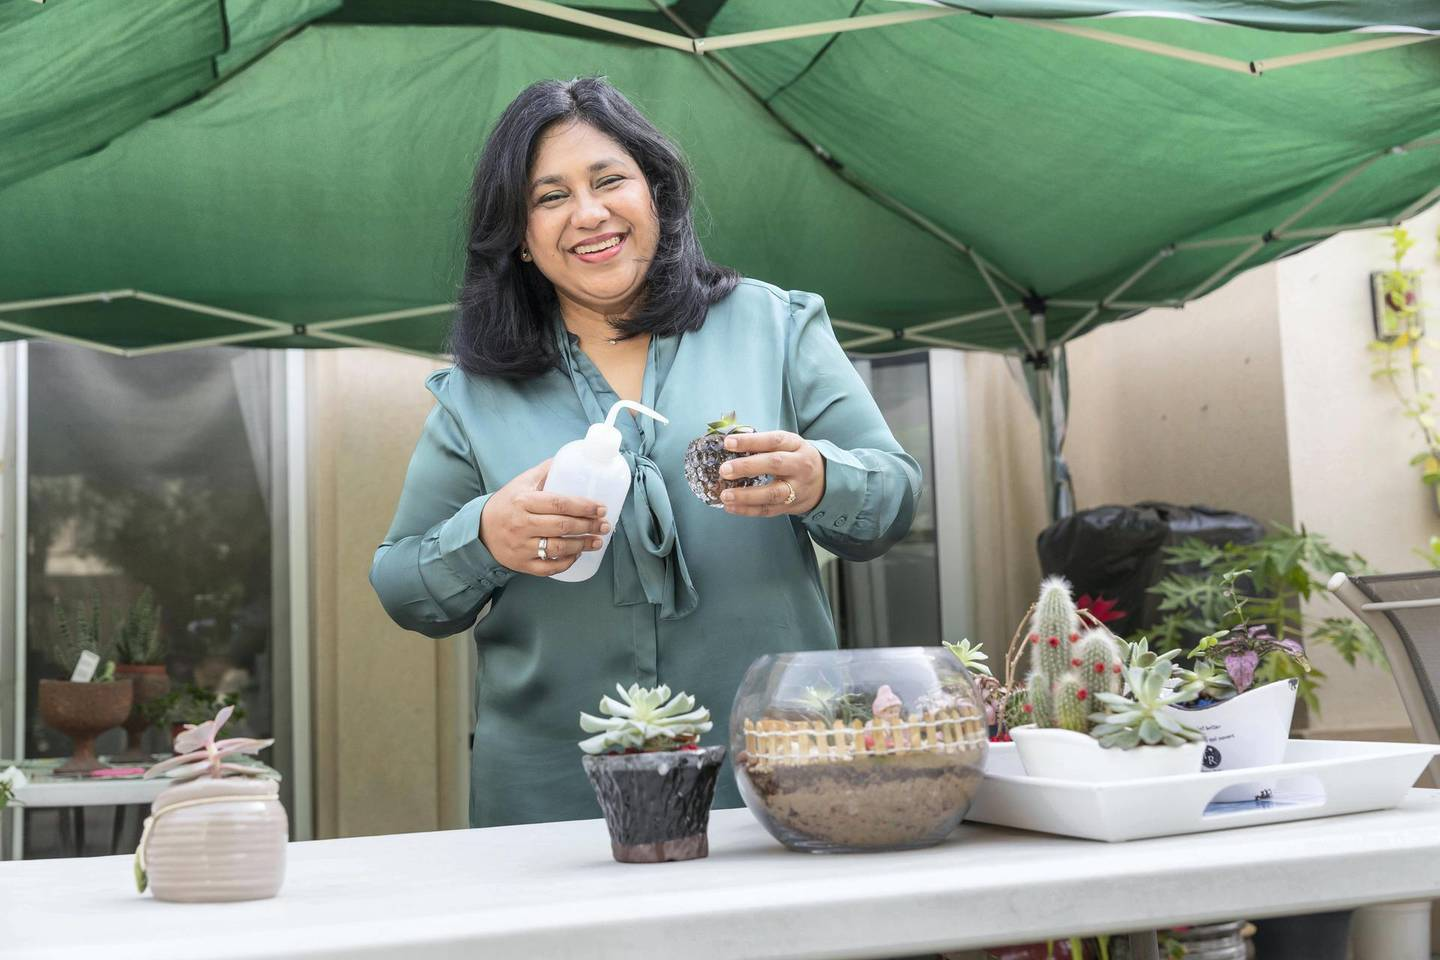 DUBAI, UNITED ARAB EMIRATES. 17 APRIL 2018. Romina Borawake works as a banker by day and moonlights as a gardener, specialising in succulents in her free time. (Photo: Antonie Robertson/The National) Journalist: Pana Munyal. Section: Weekend.